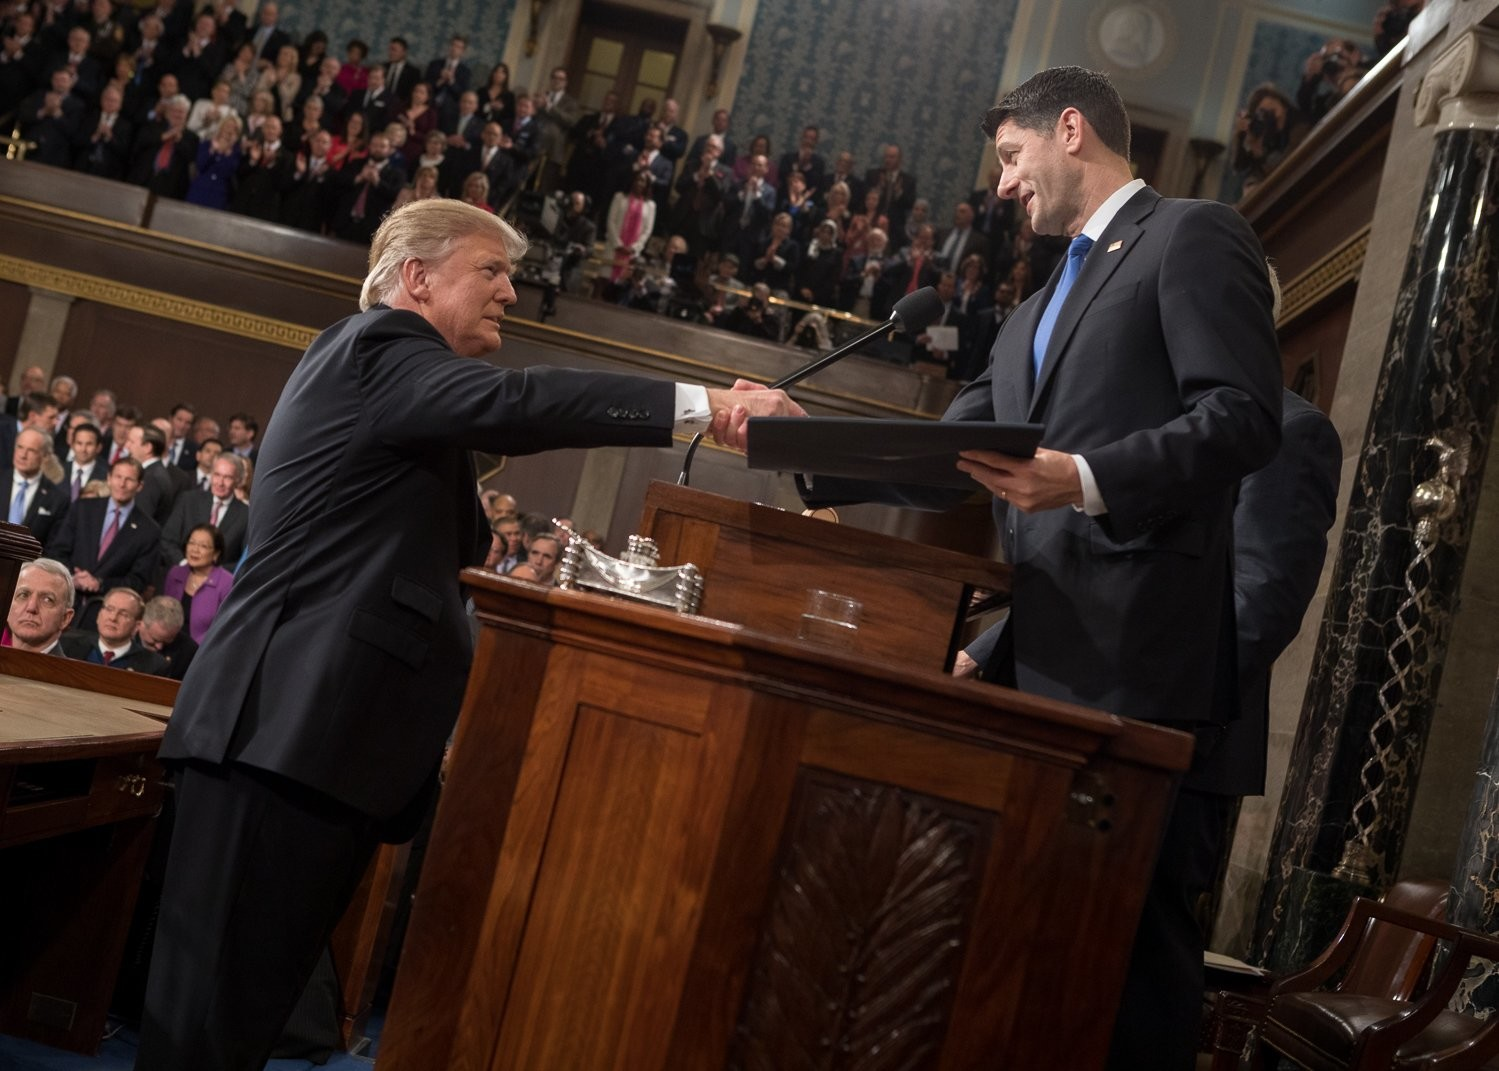 President Donald Trump, left, and Speaker of the House, Paul Ryan, shake hands on the floor of the House of Representatives